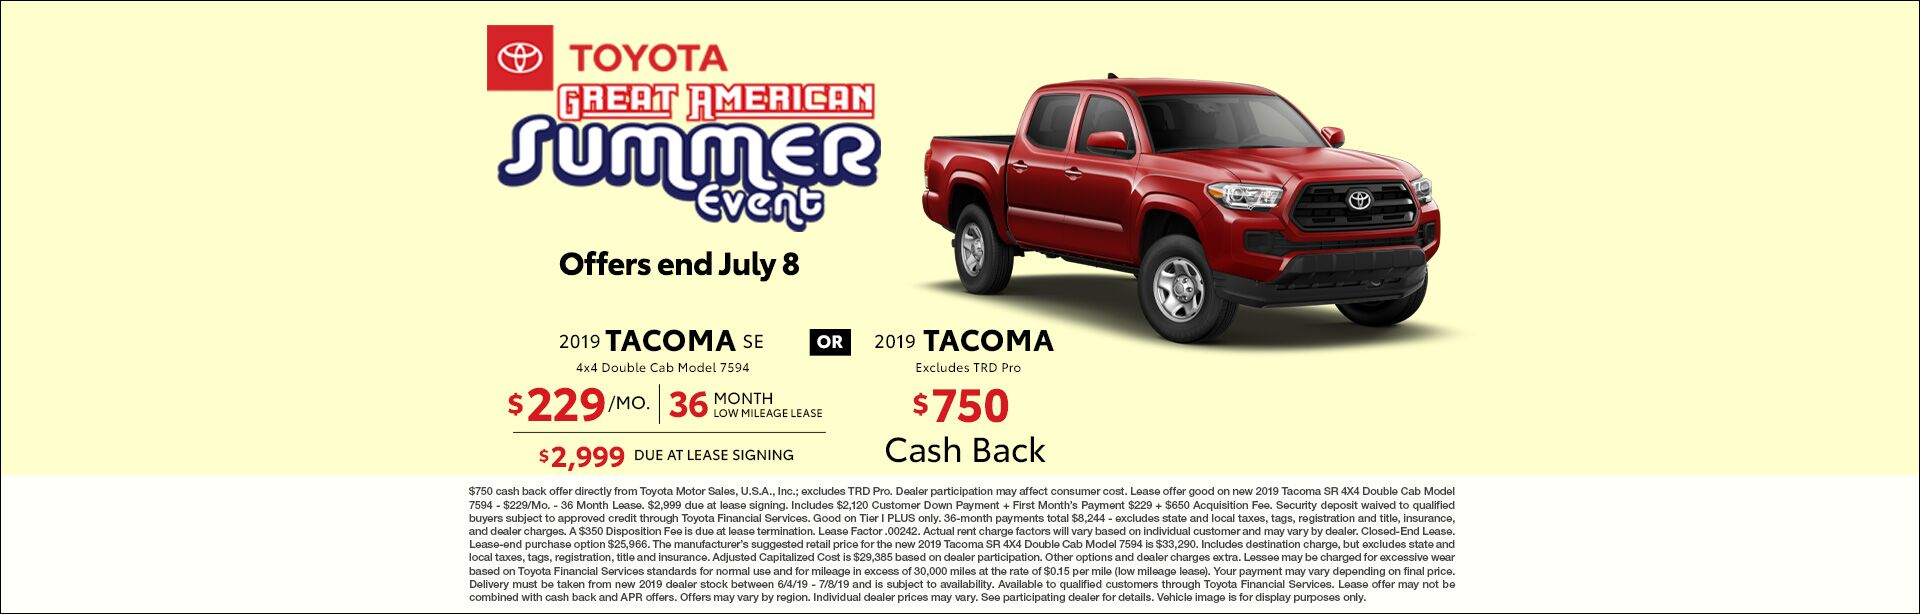 2019 June CIN Toyota Great American Summer Sales Event Tacoma